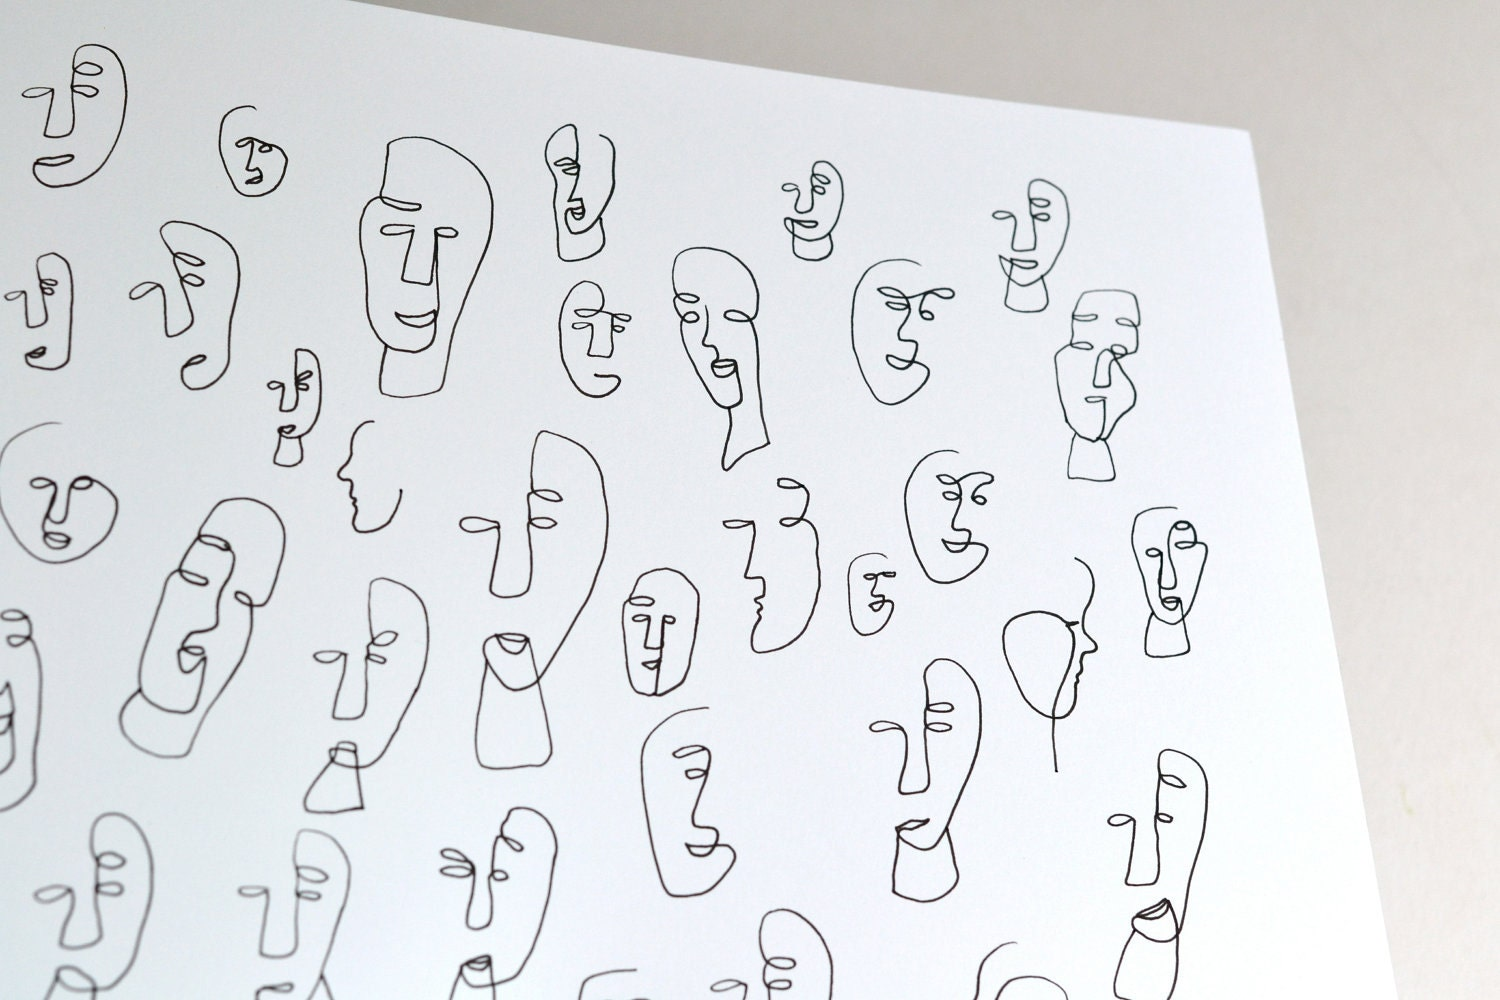 One Line Art Faces : Original drawing abstract faces the people around me no